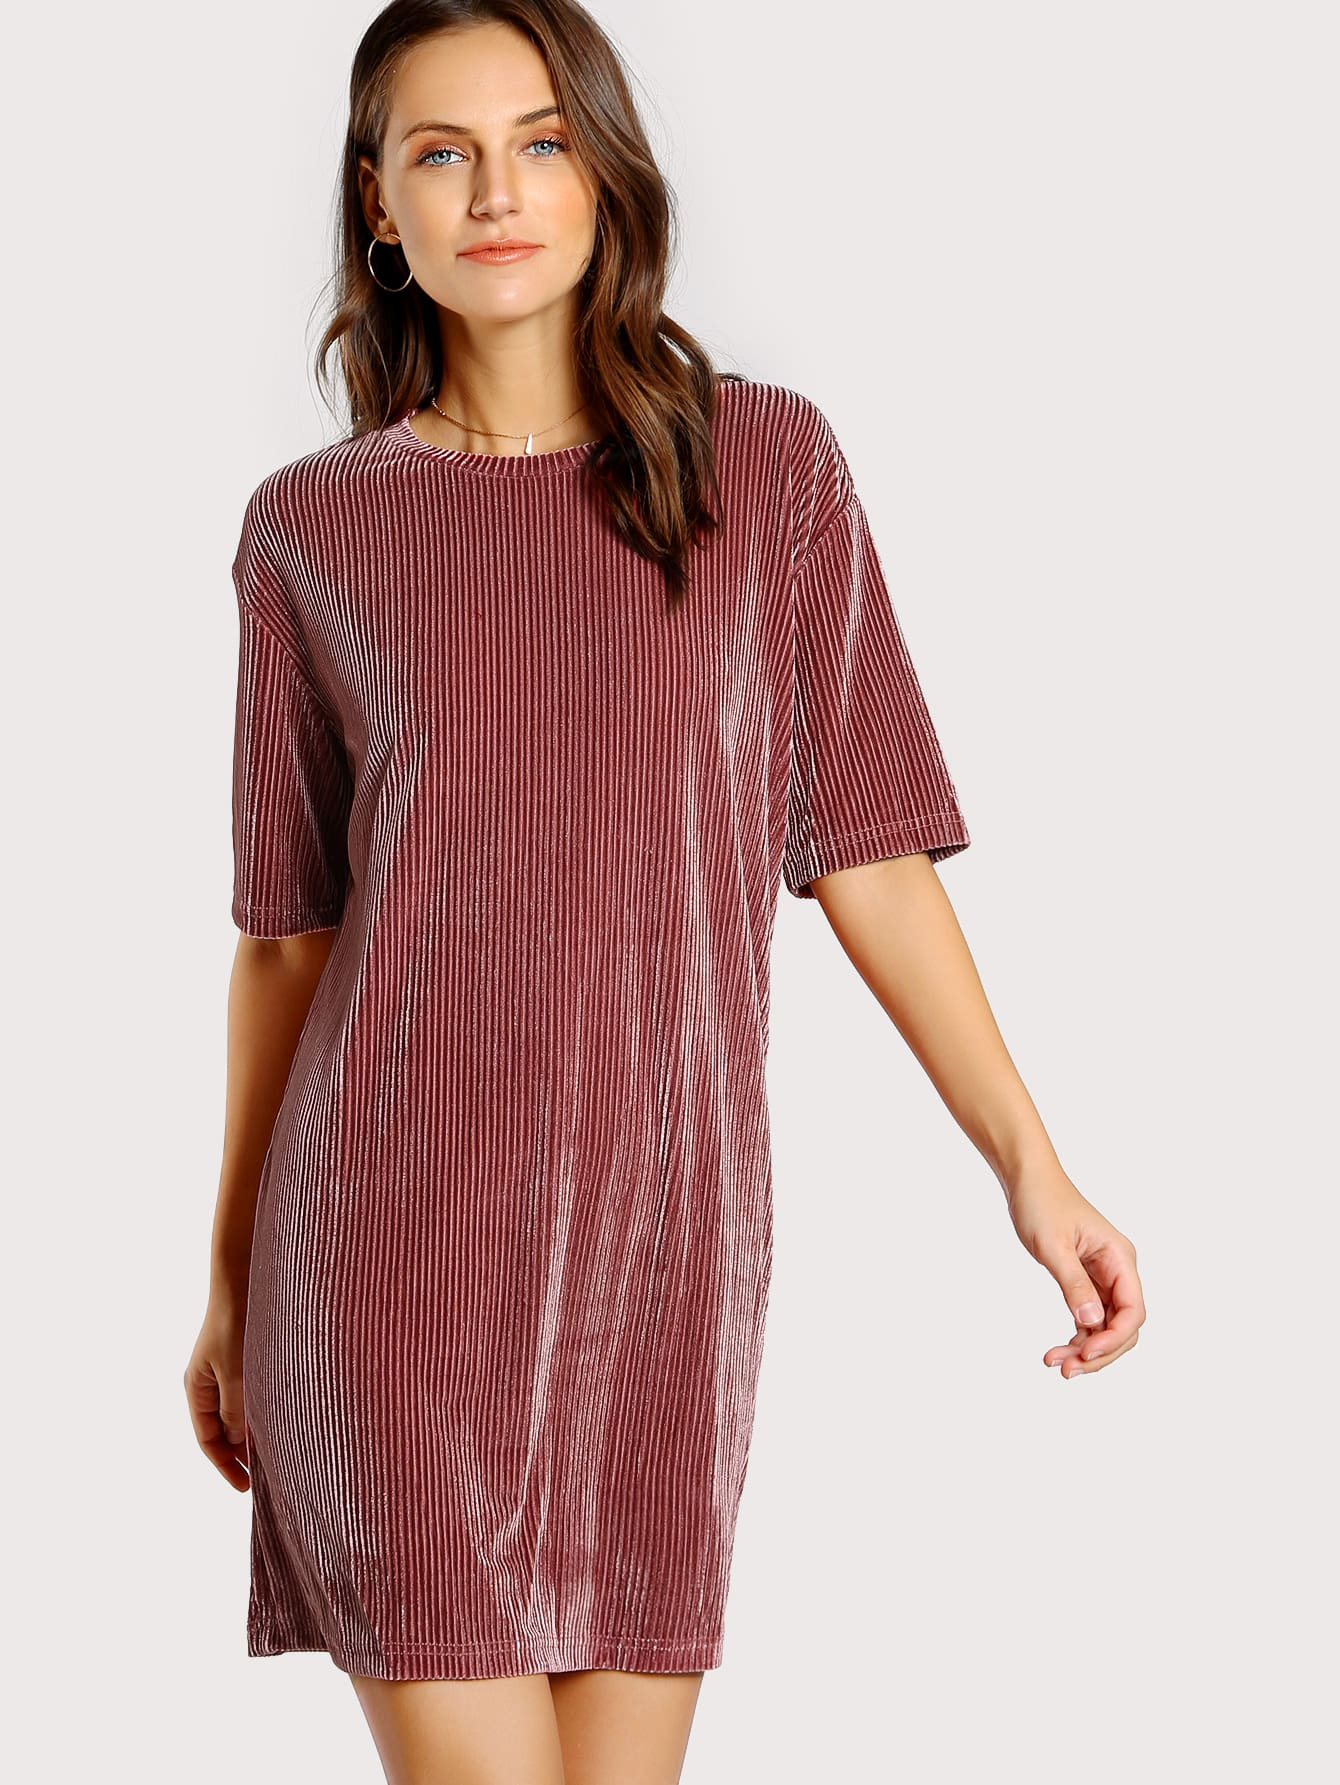 Ribbed Velvet Tee Dress dressmmc170907704